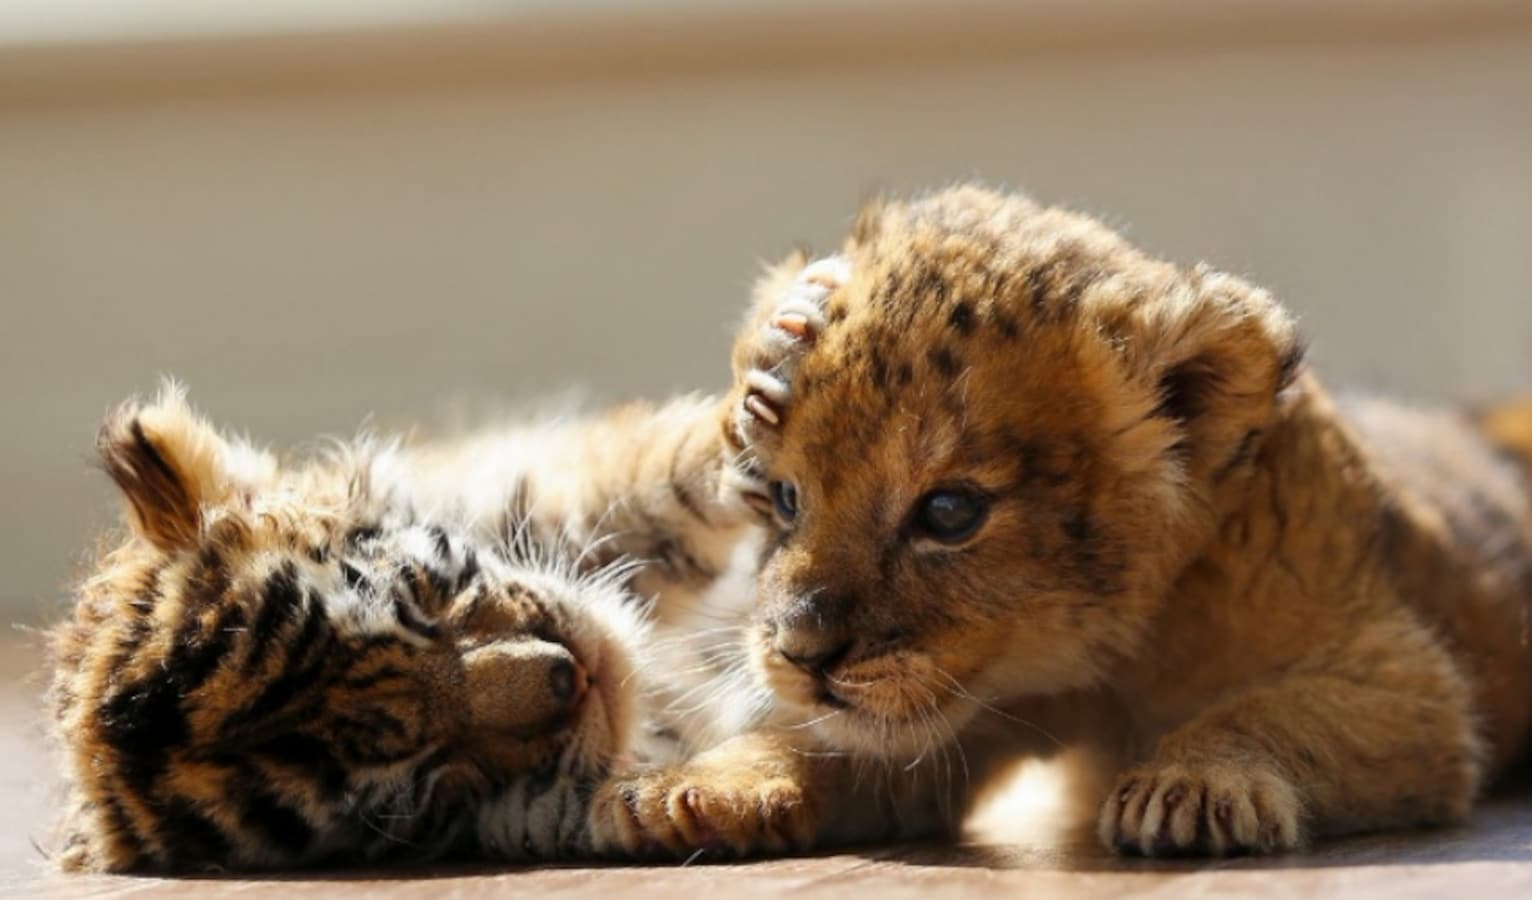 Baby Tiger & Baby Lion Become Besties